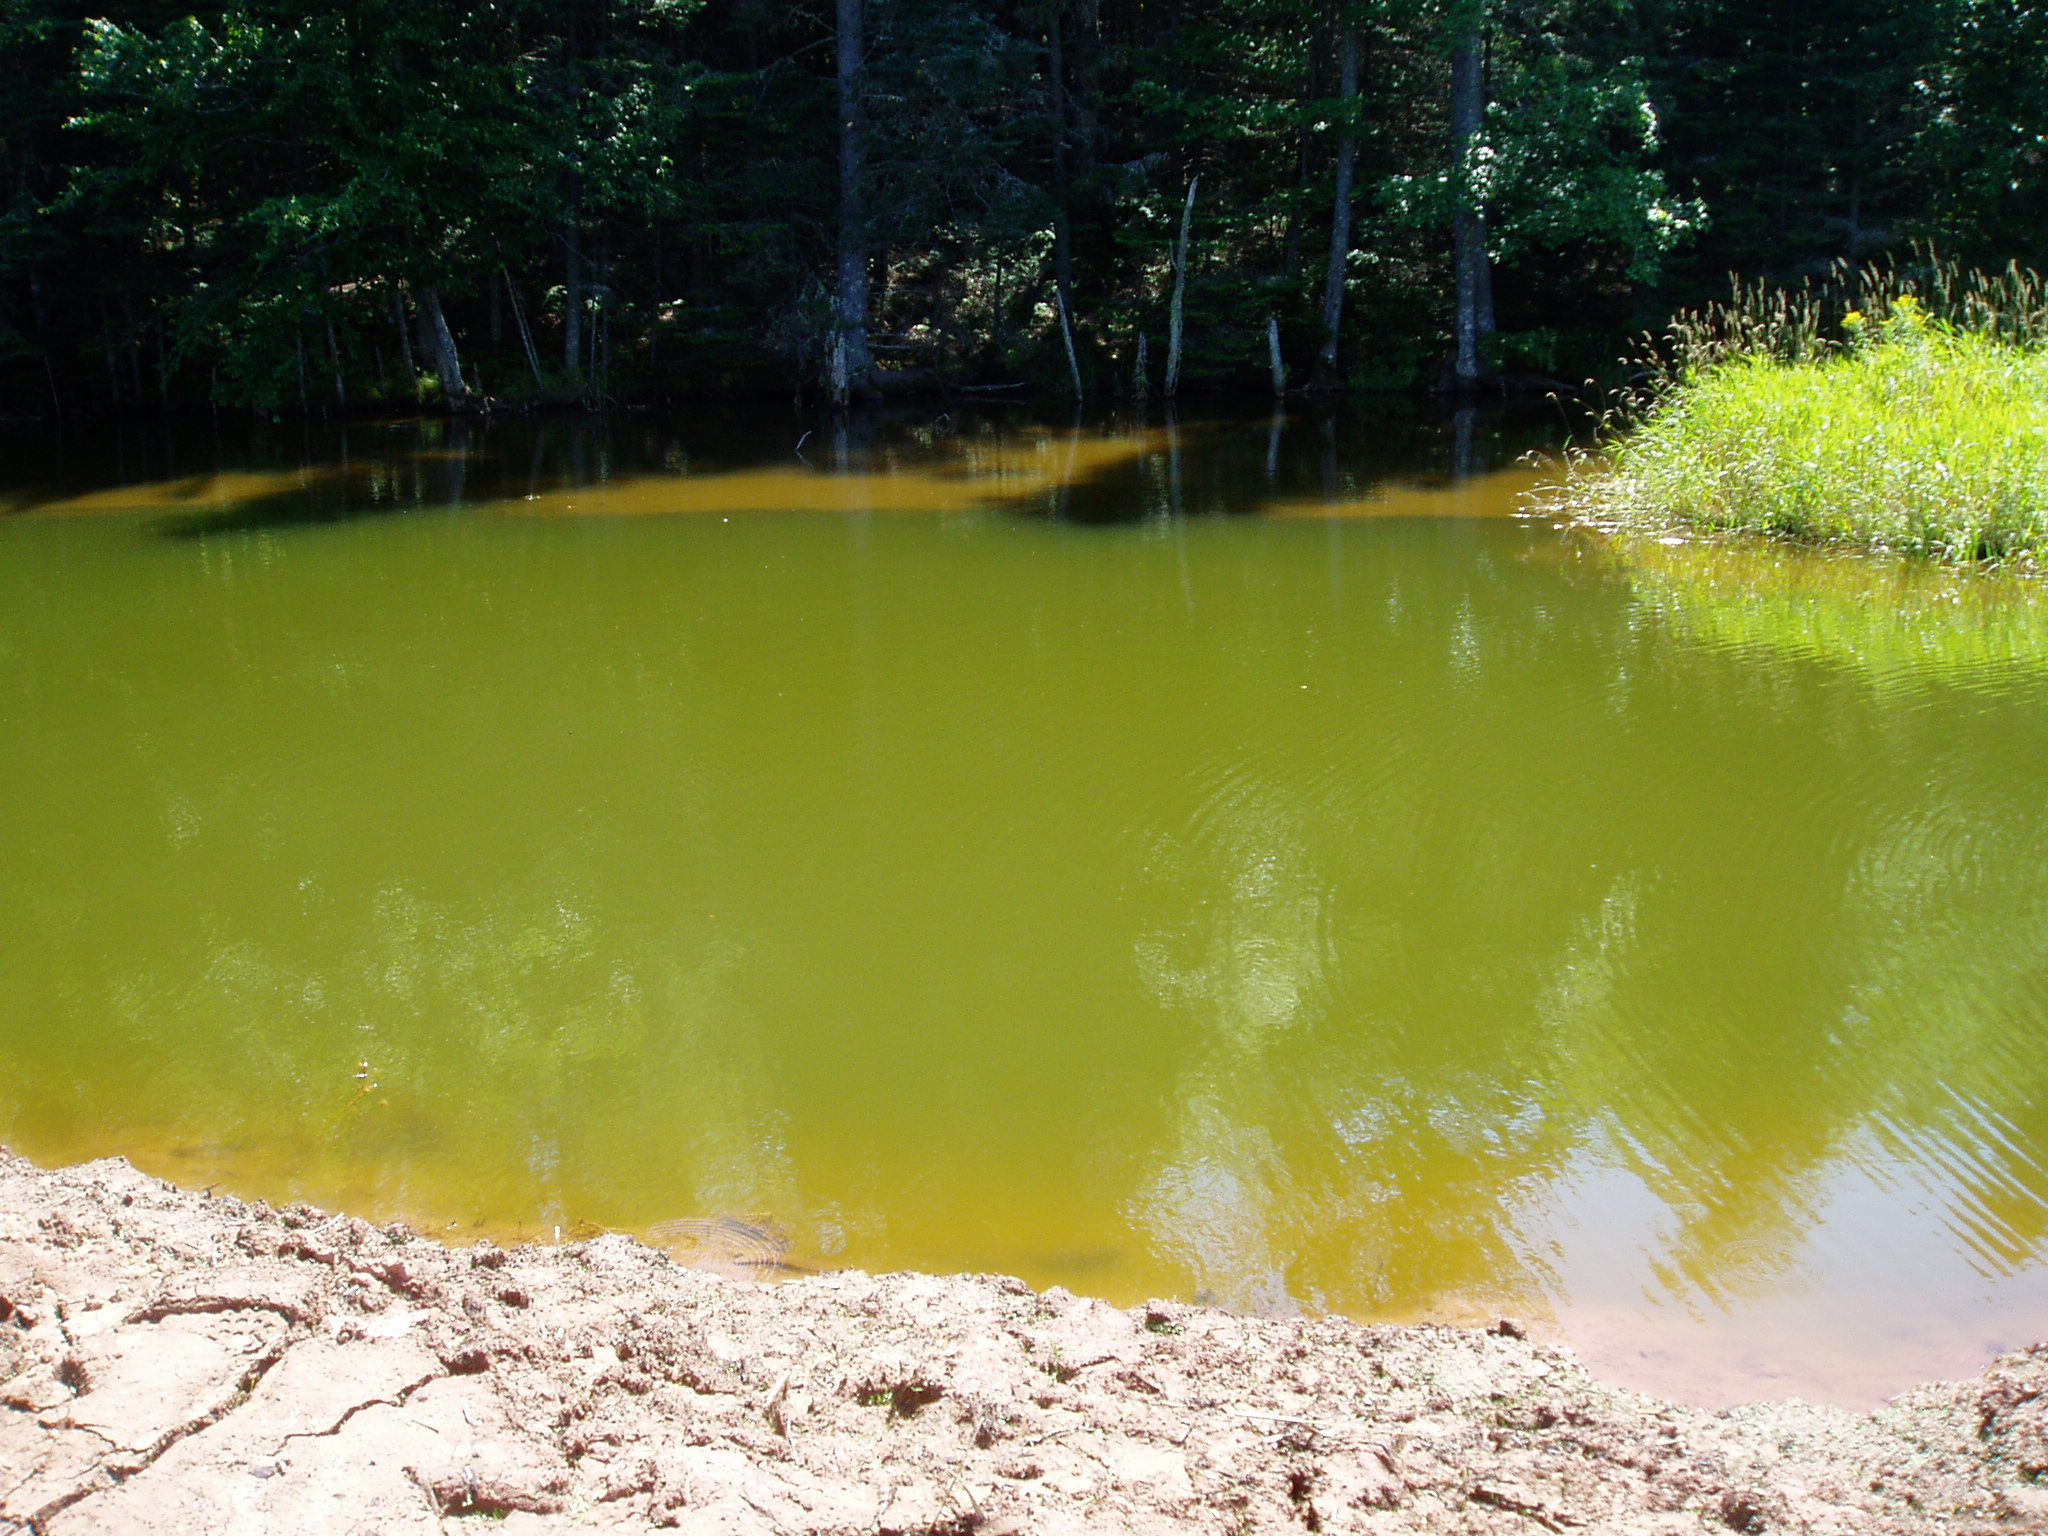 Lime-ricky coloured algal bloom in a pond